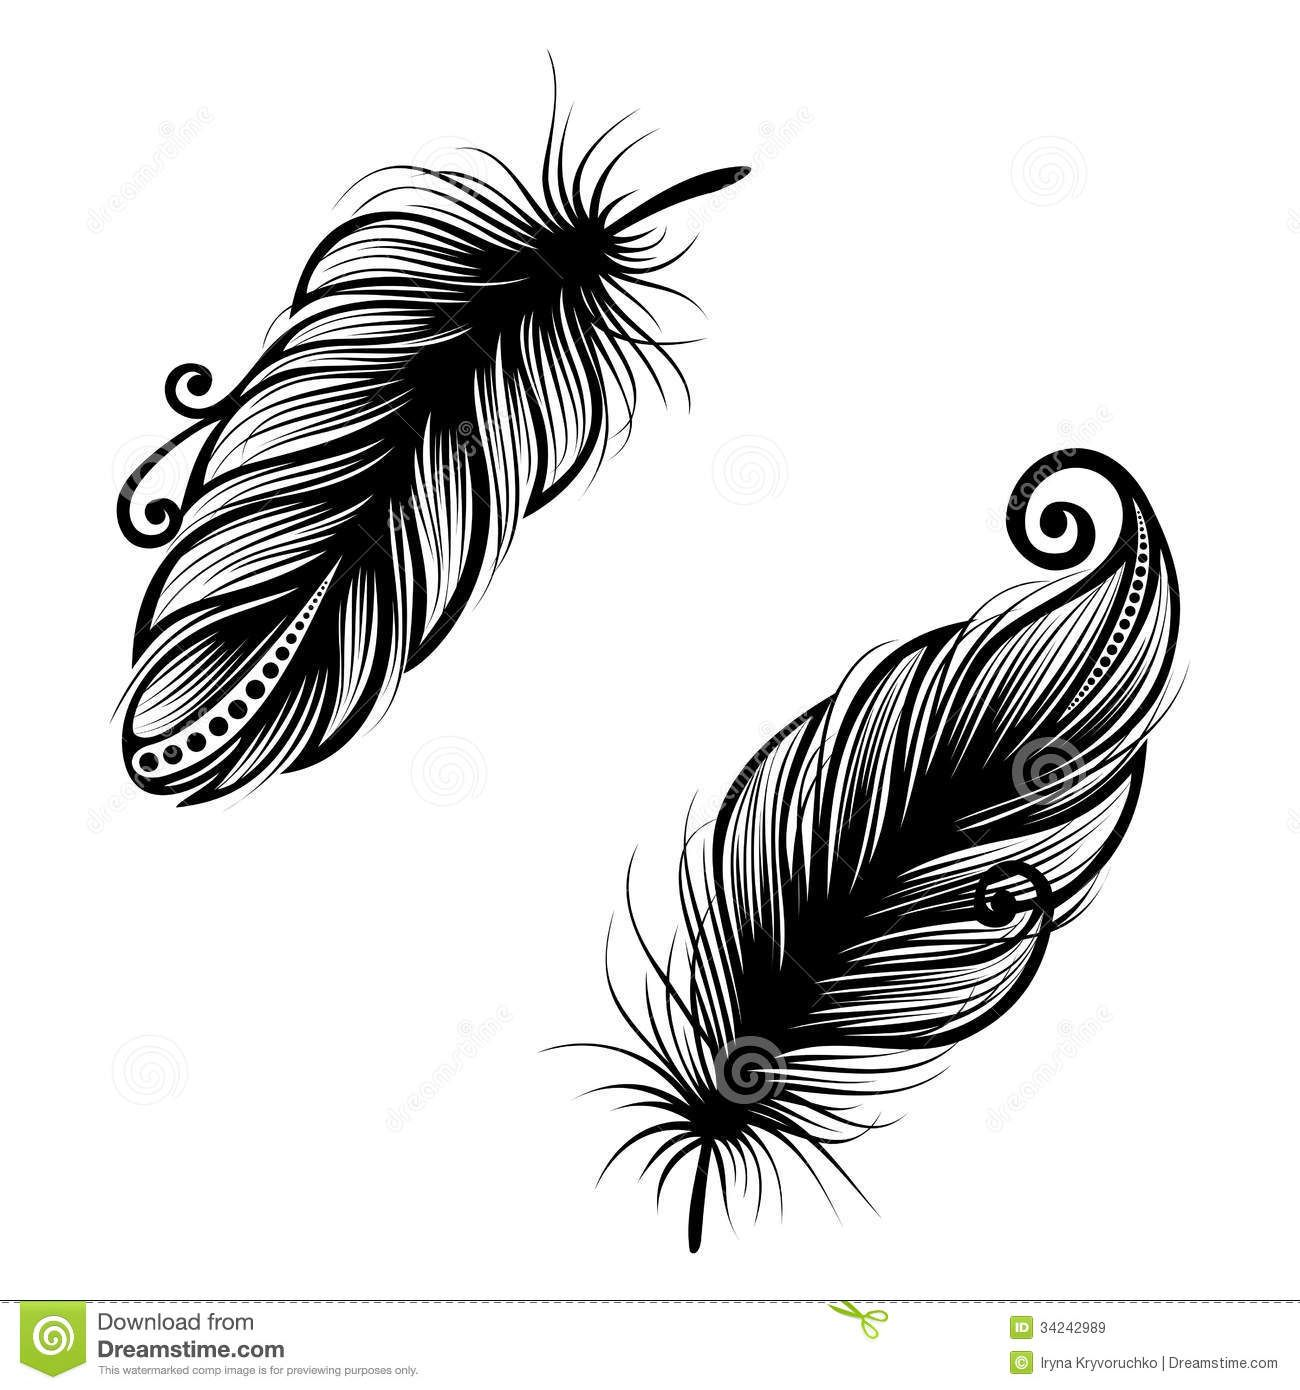 oiseau abstrait de plume dessin images pinterest plumes et oiseaux. Black Bedroom Furniture Sets. Home Design Ideas